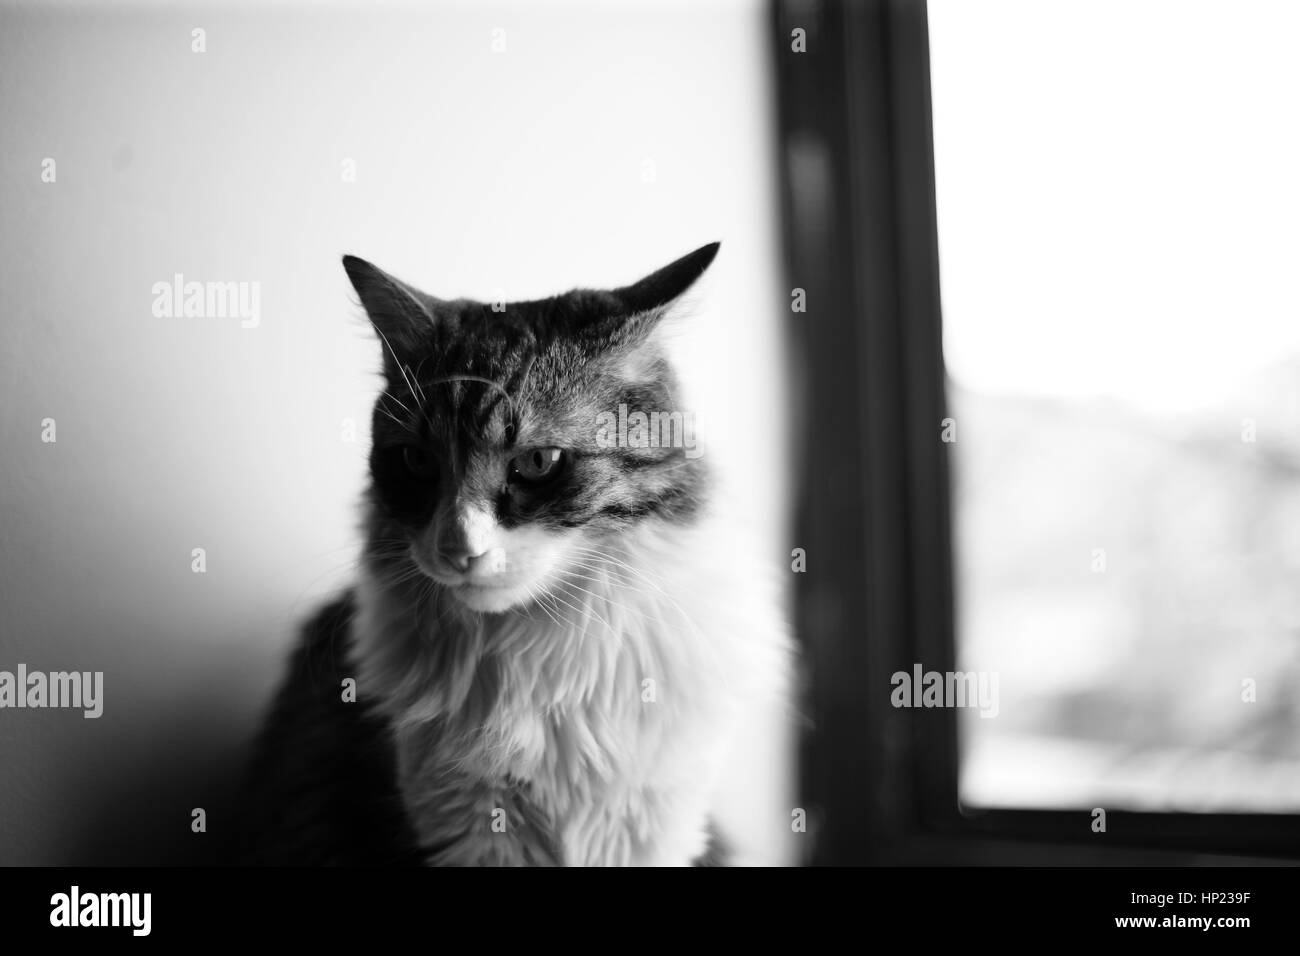 A portrait of a long furred cat with a melancholic look, sitting on a window shelf - Stock Image